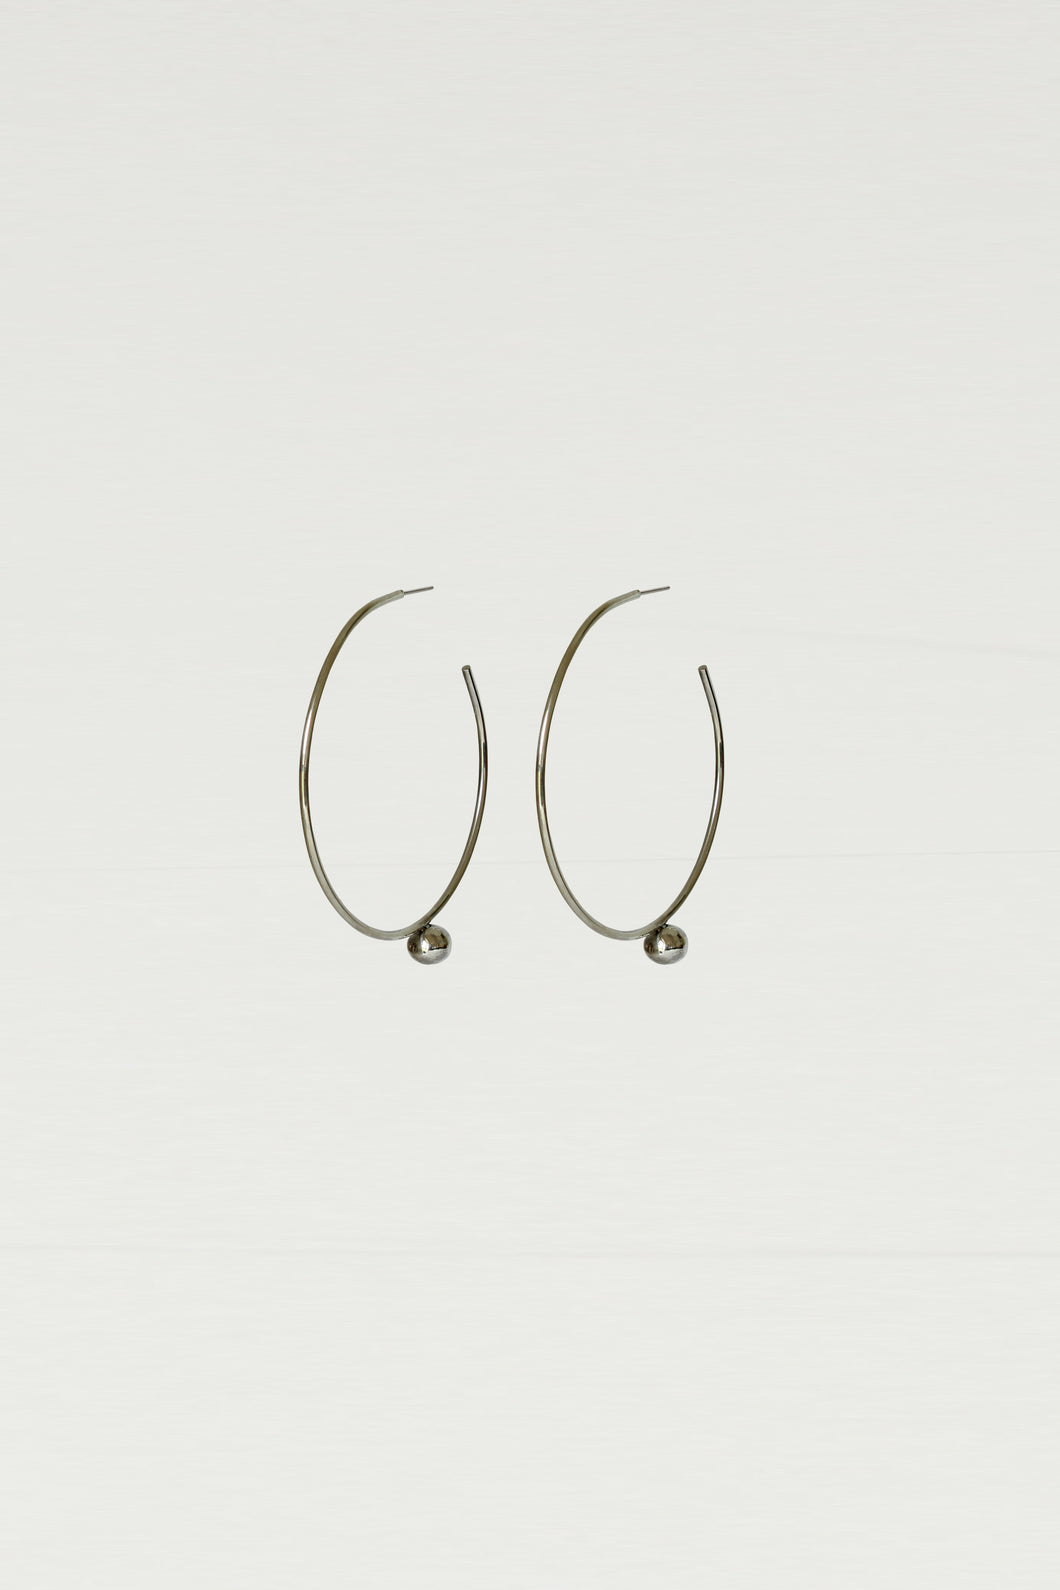 Series 6, earring 2, silver